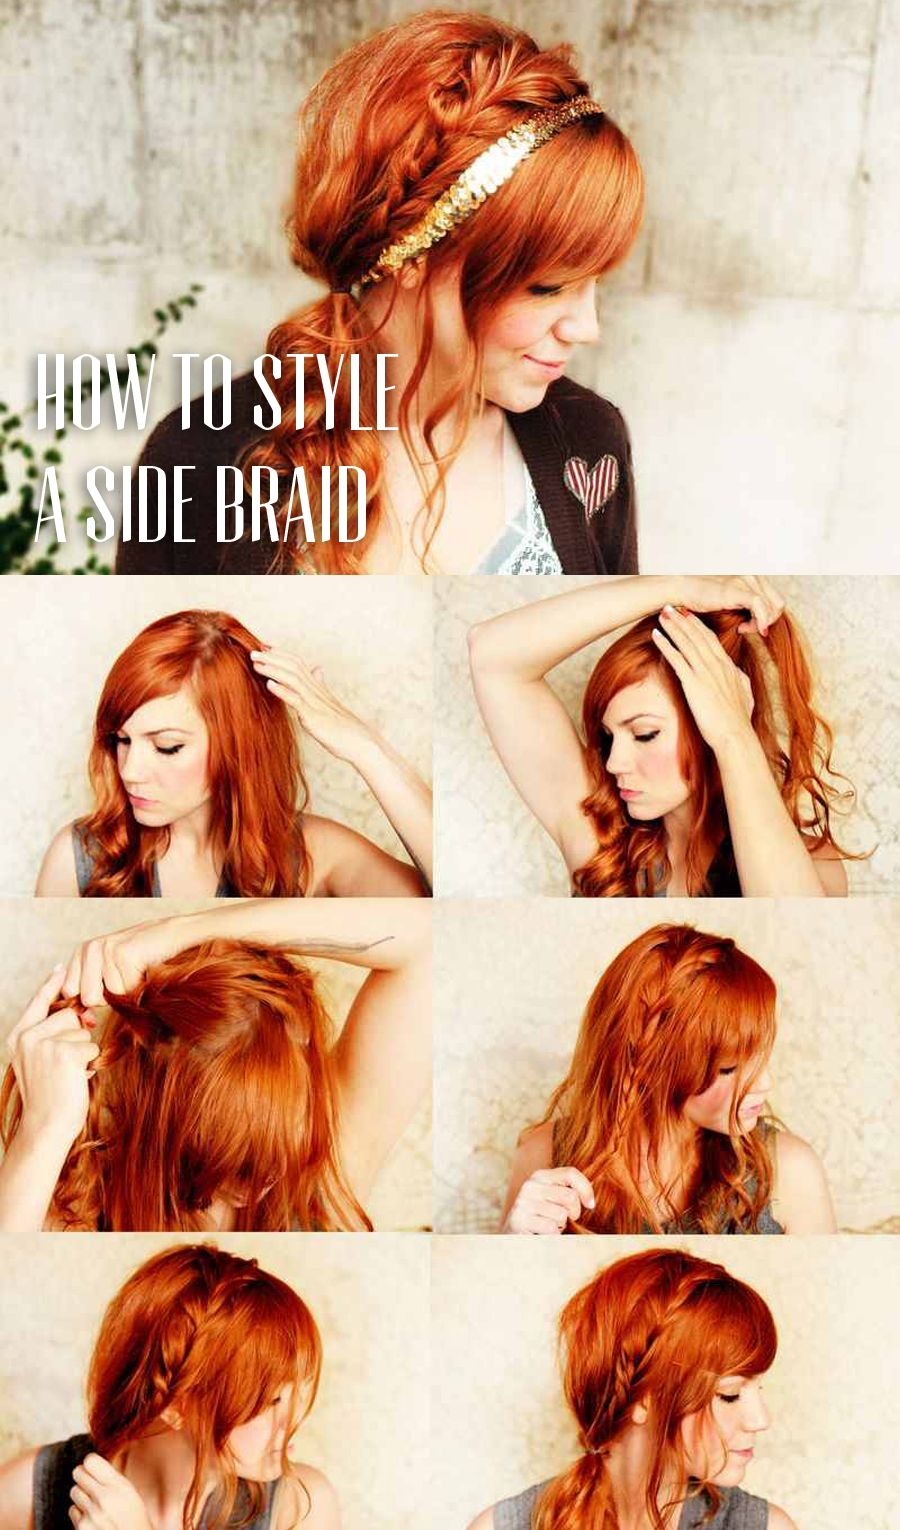 How to style a side braid hair fashion pinterest